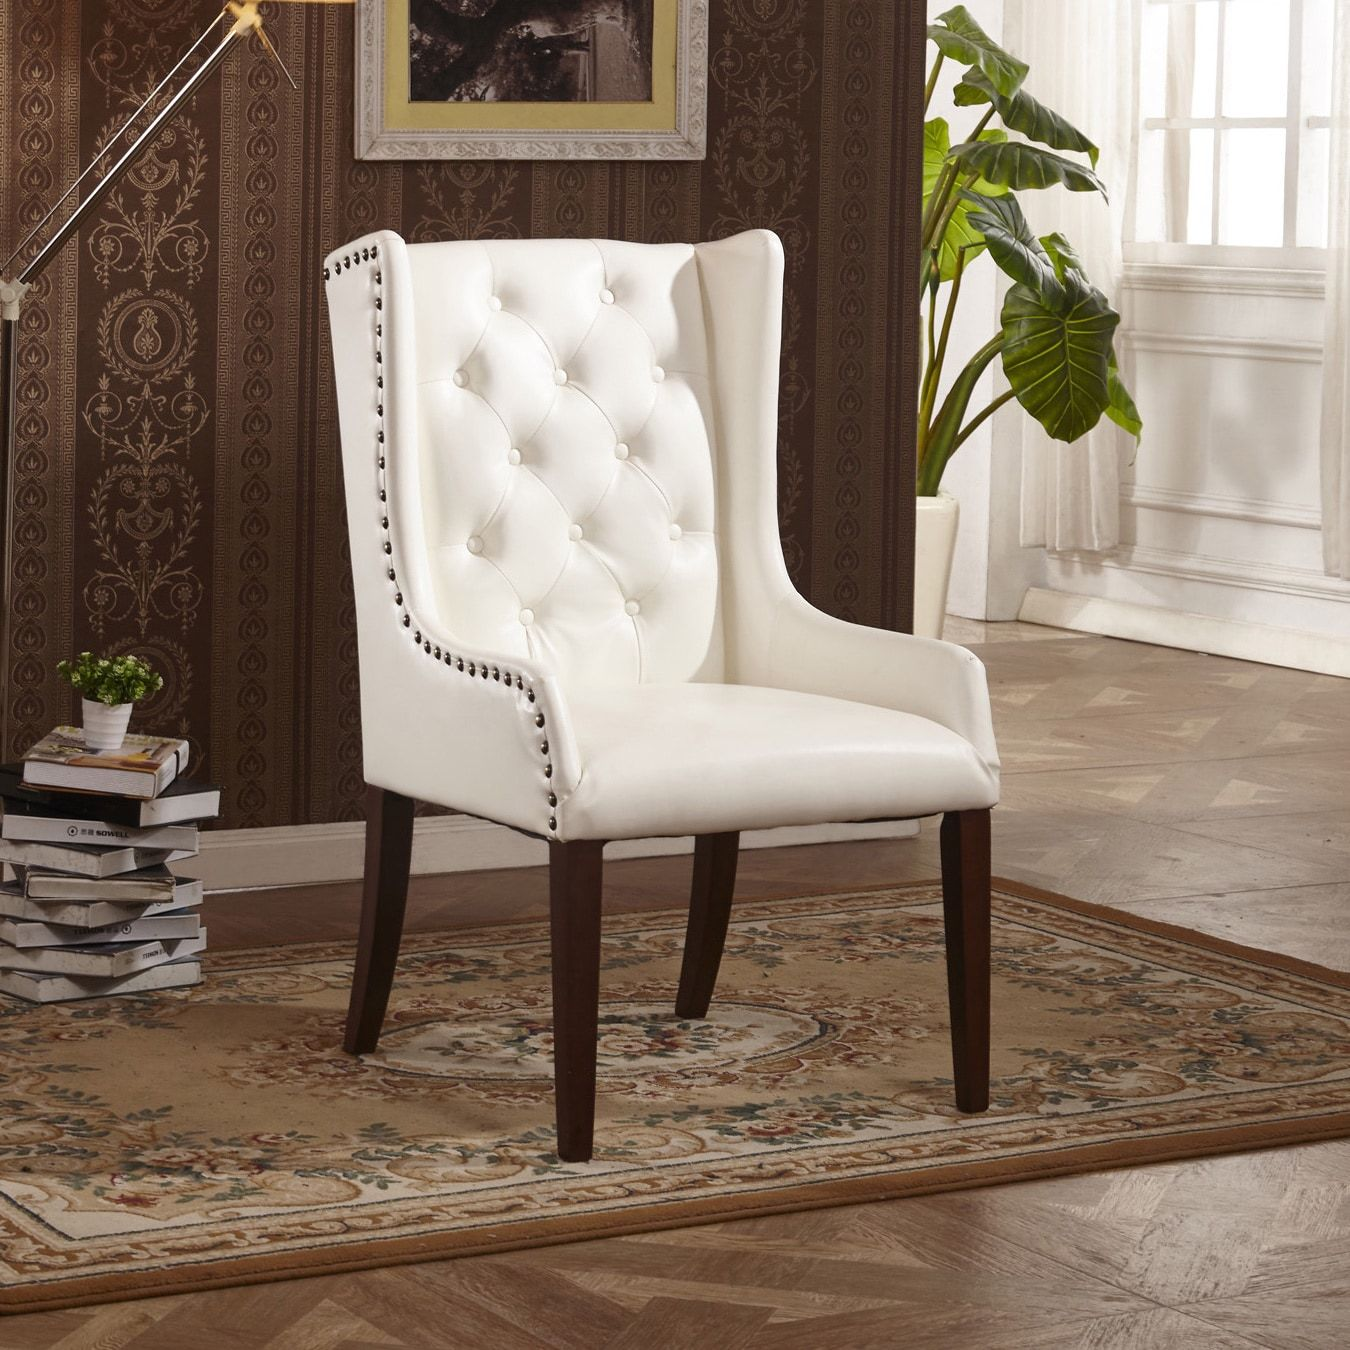 Usa classic faux leather sloped arm dining chair with pillow white